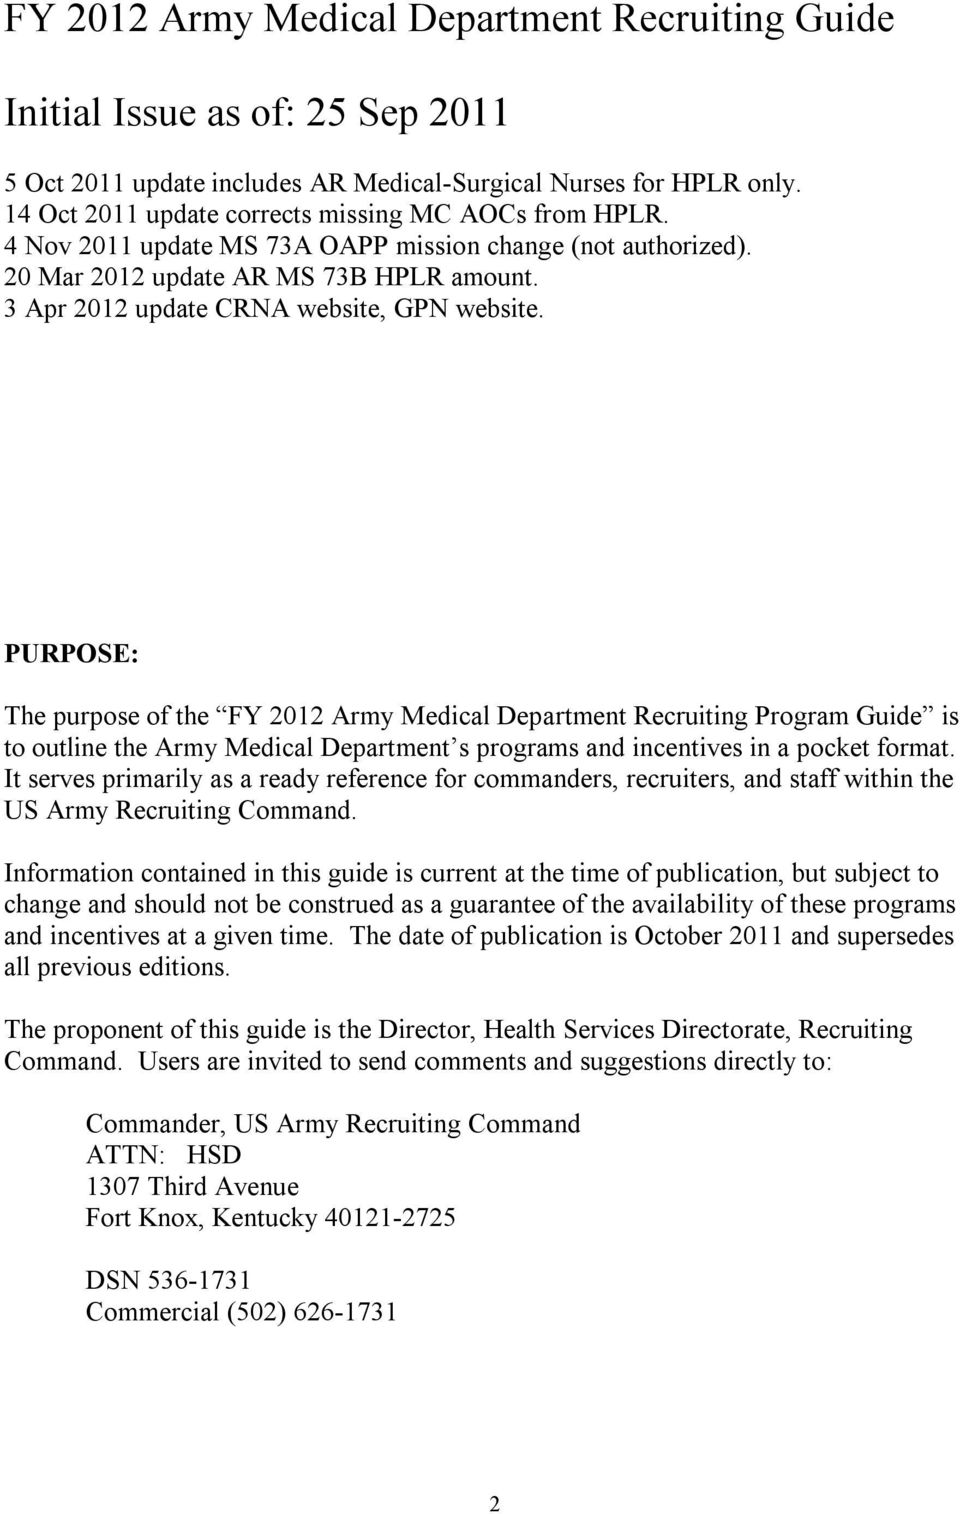 FY 2012 ARMY MEDICAL DEPARTMENT RECRUITING PROGRAM GUIDE - PDF